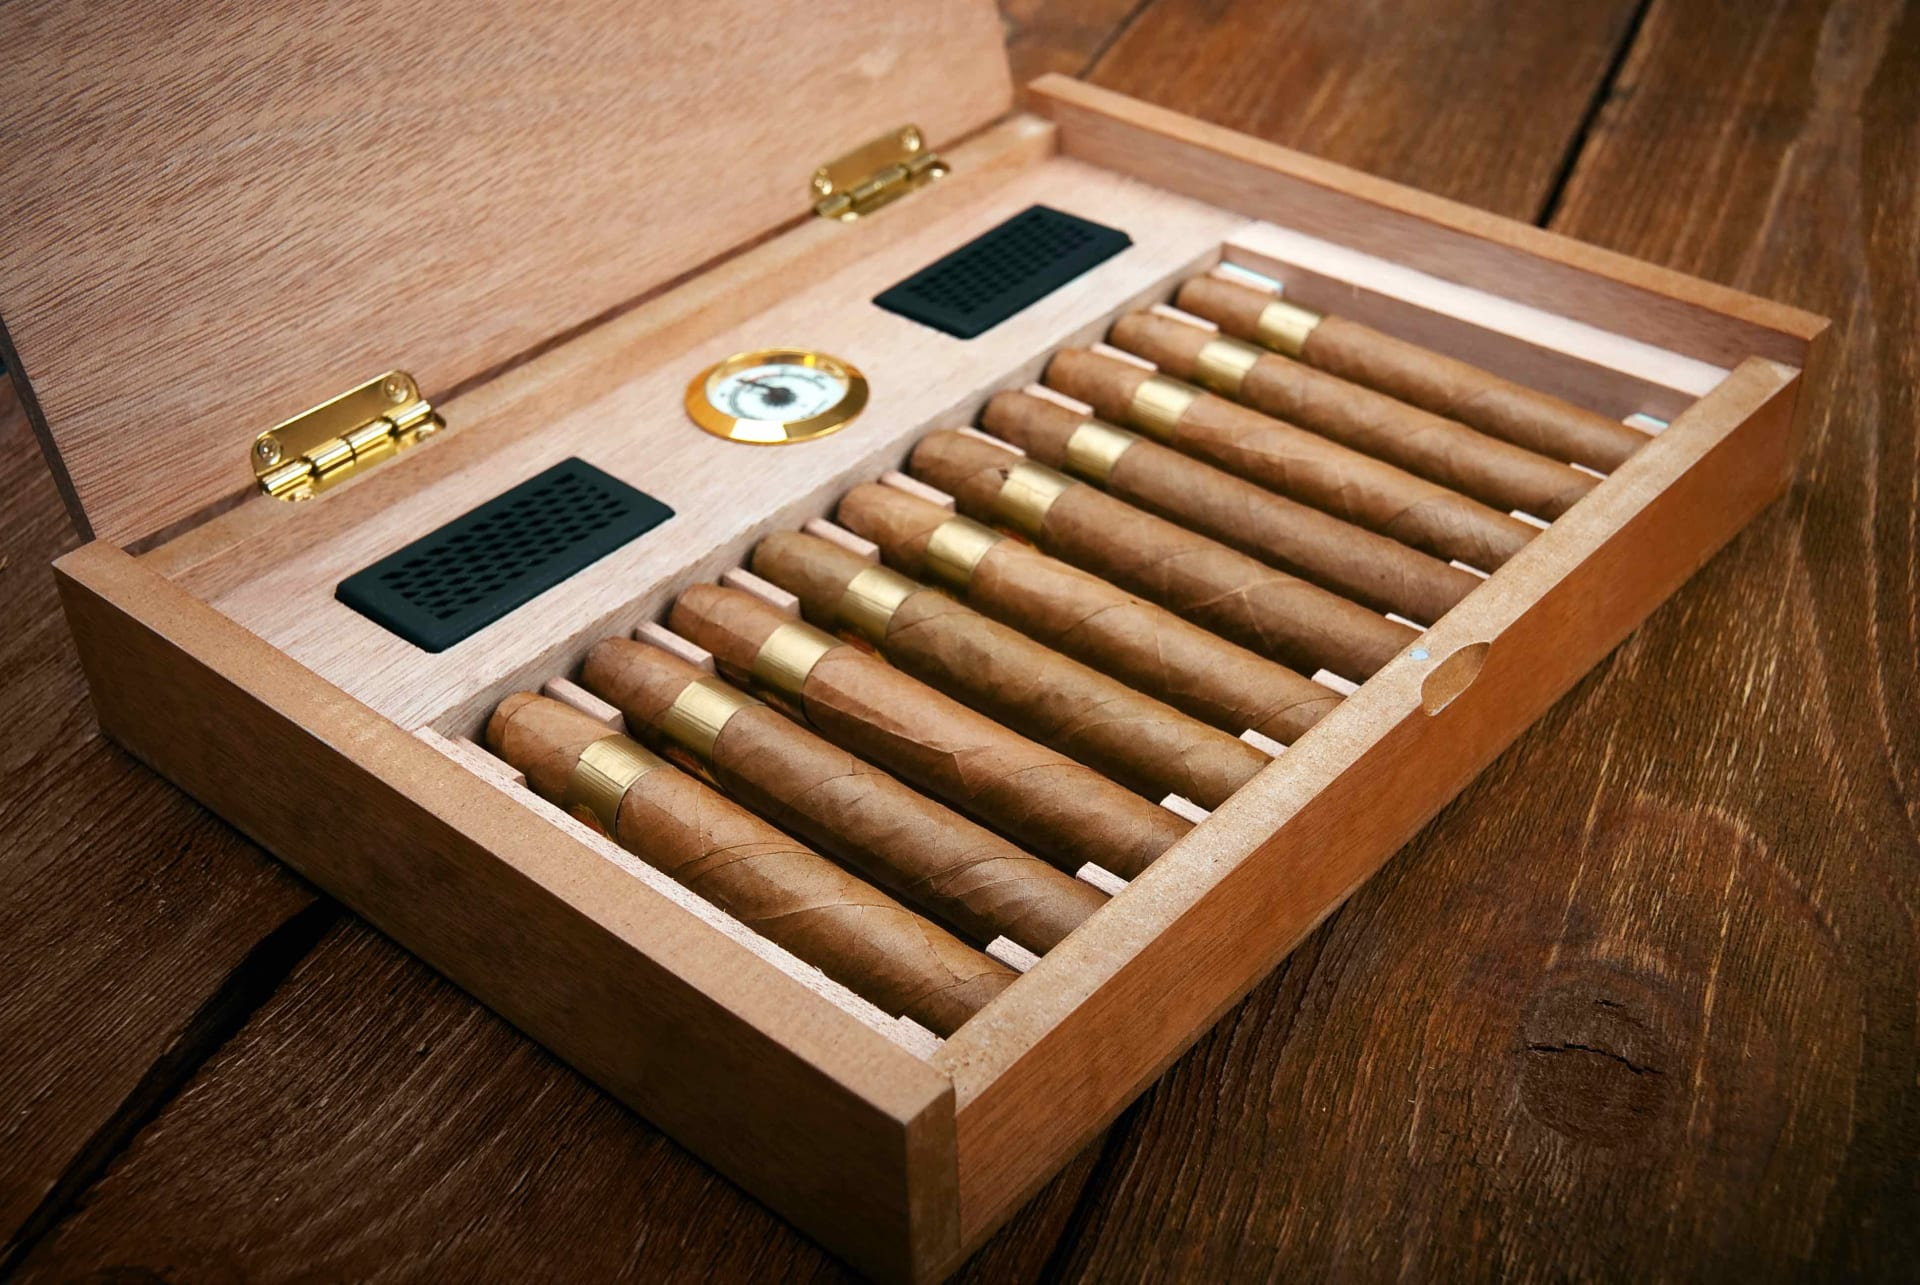 15 Best Humidors For Home or Travel Humidors Featured Image